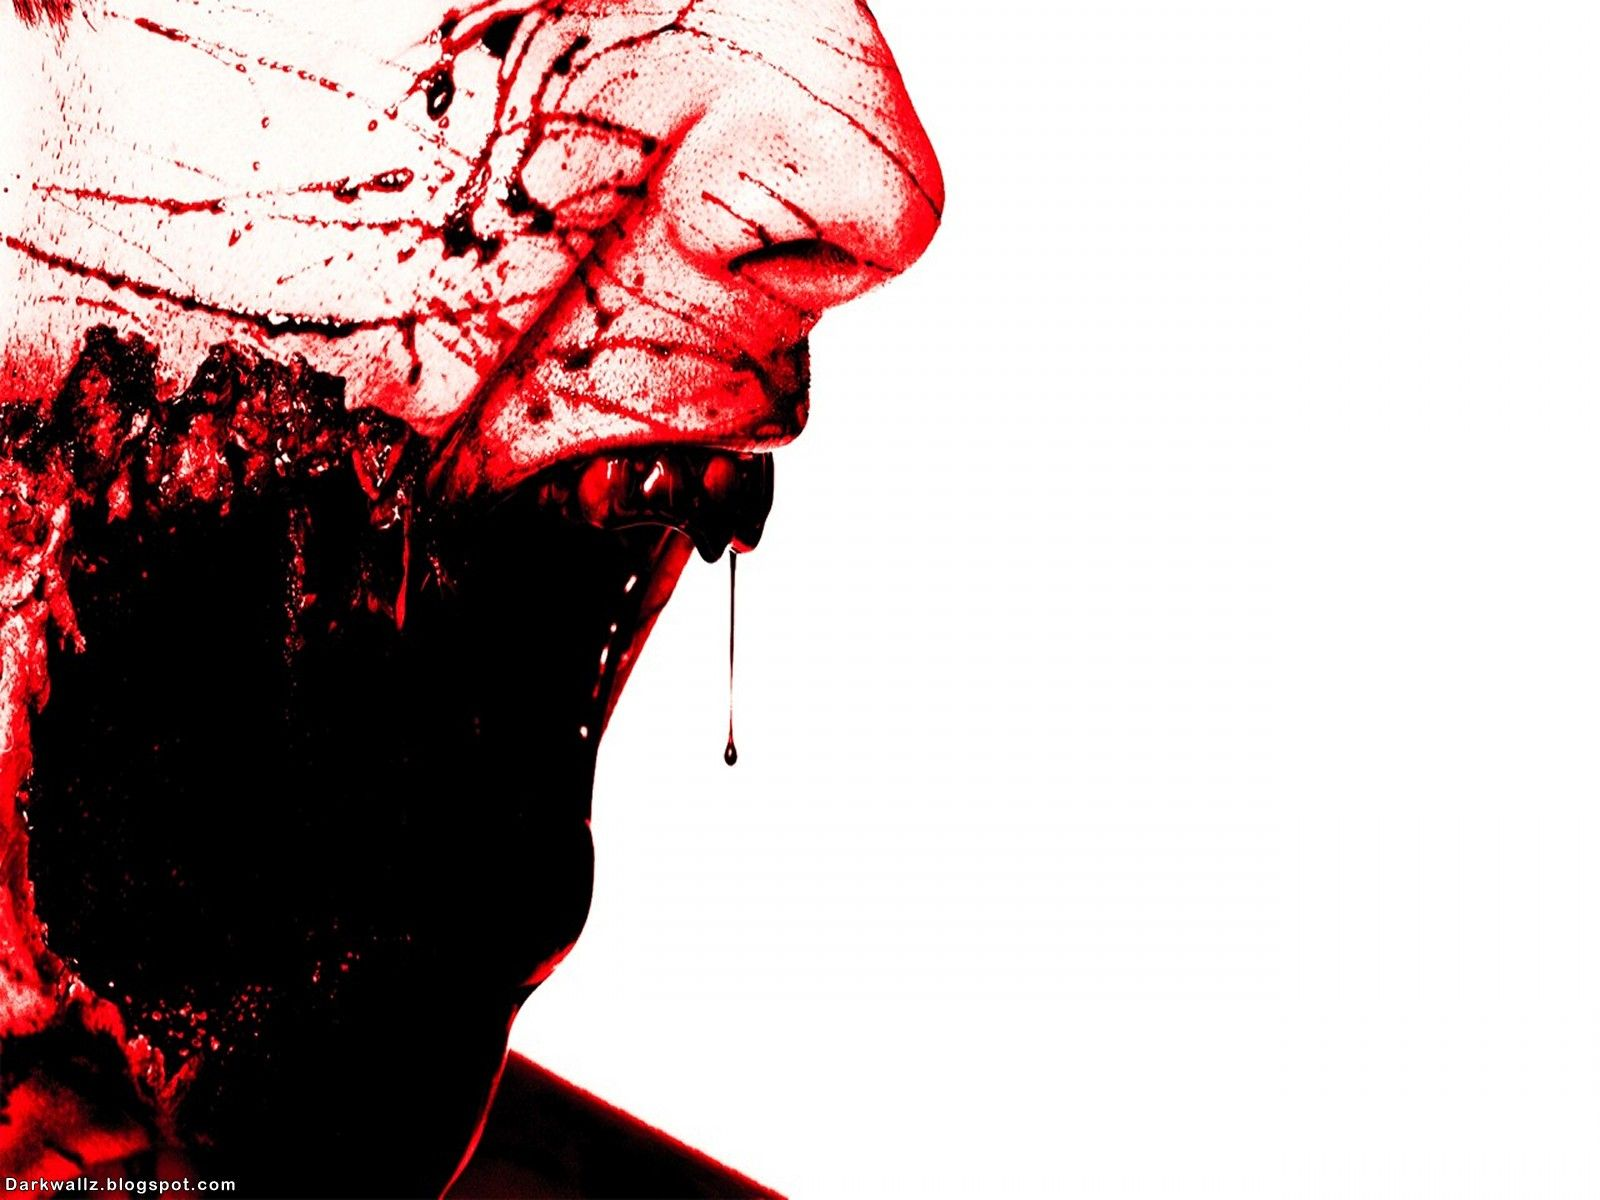 blood wallpaper find best latest blood wallpaper for your pc desktop